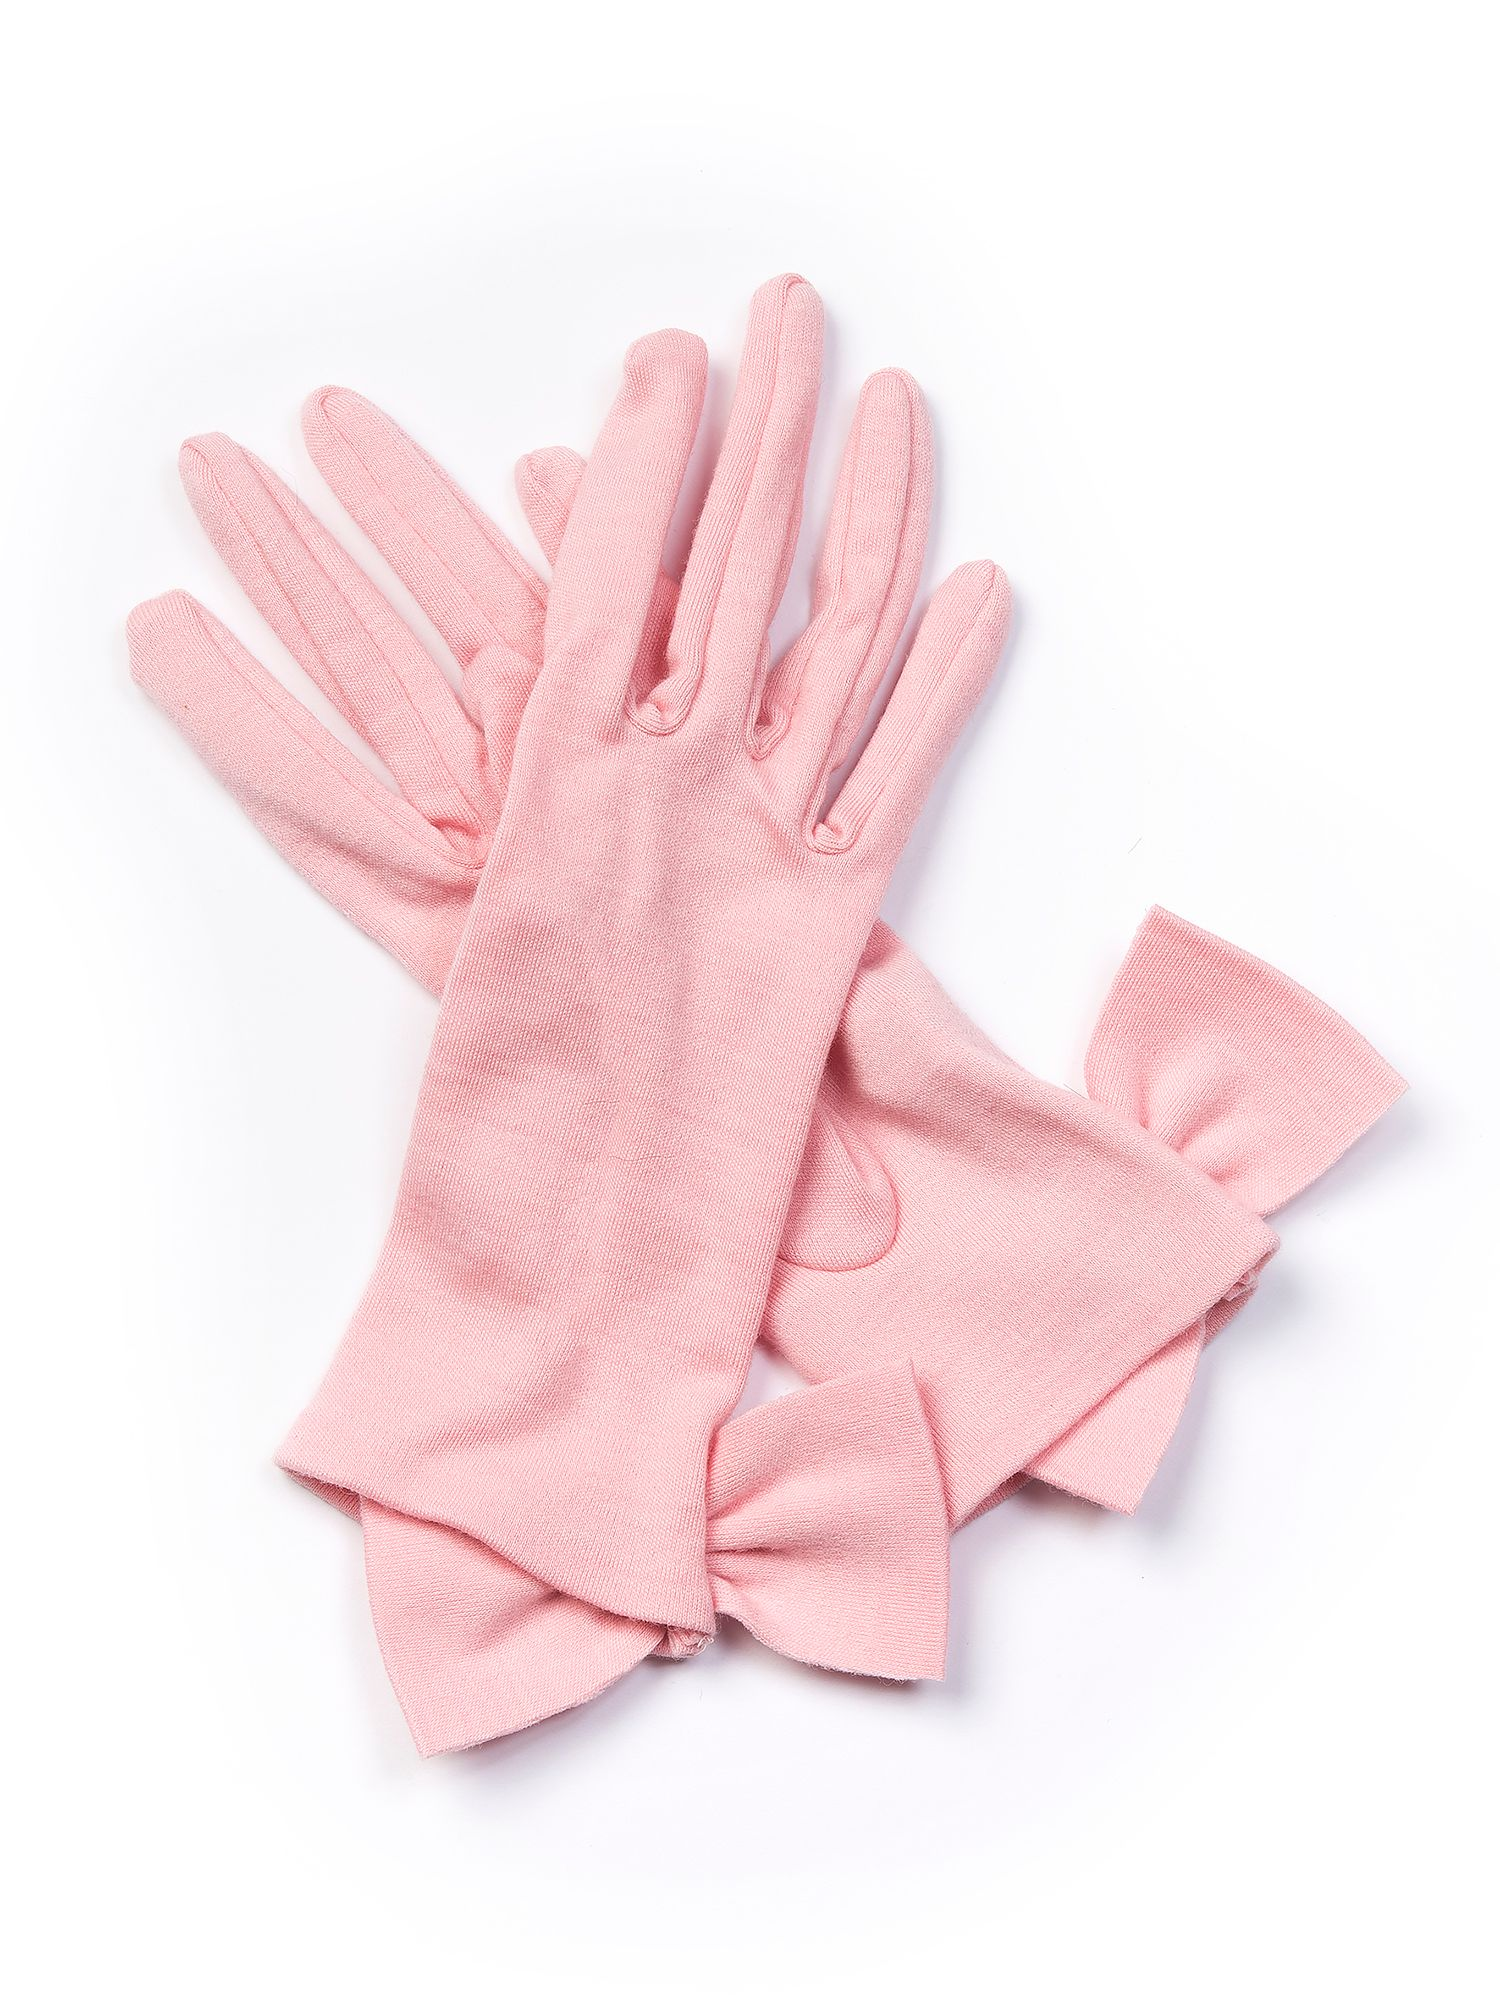 Vintage Style Gloves Cornelia James Imogen Merino Wool Gloves £70.00 AT vintagedancer.com